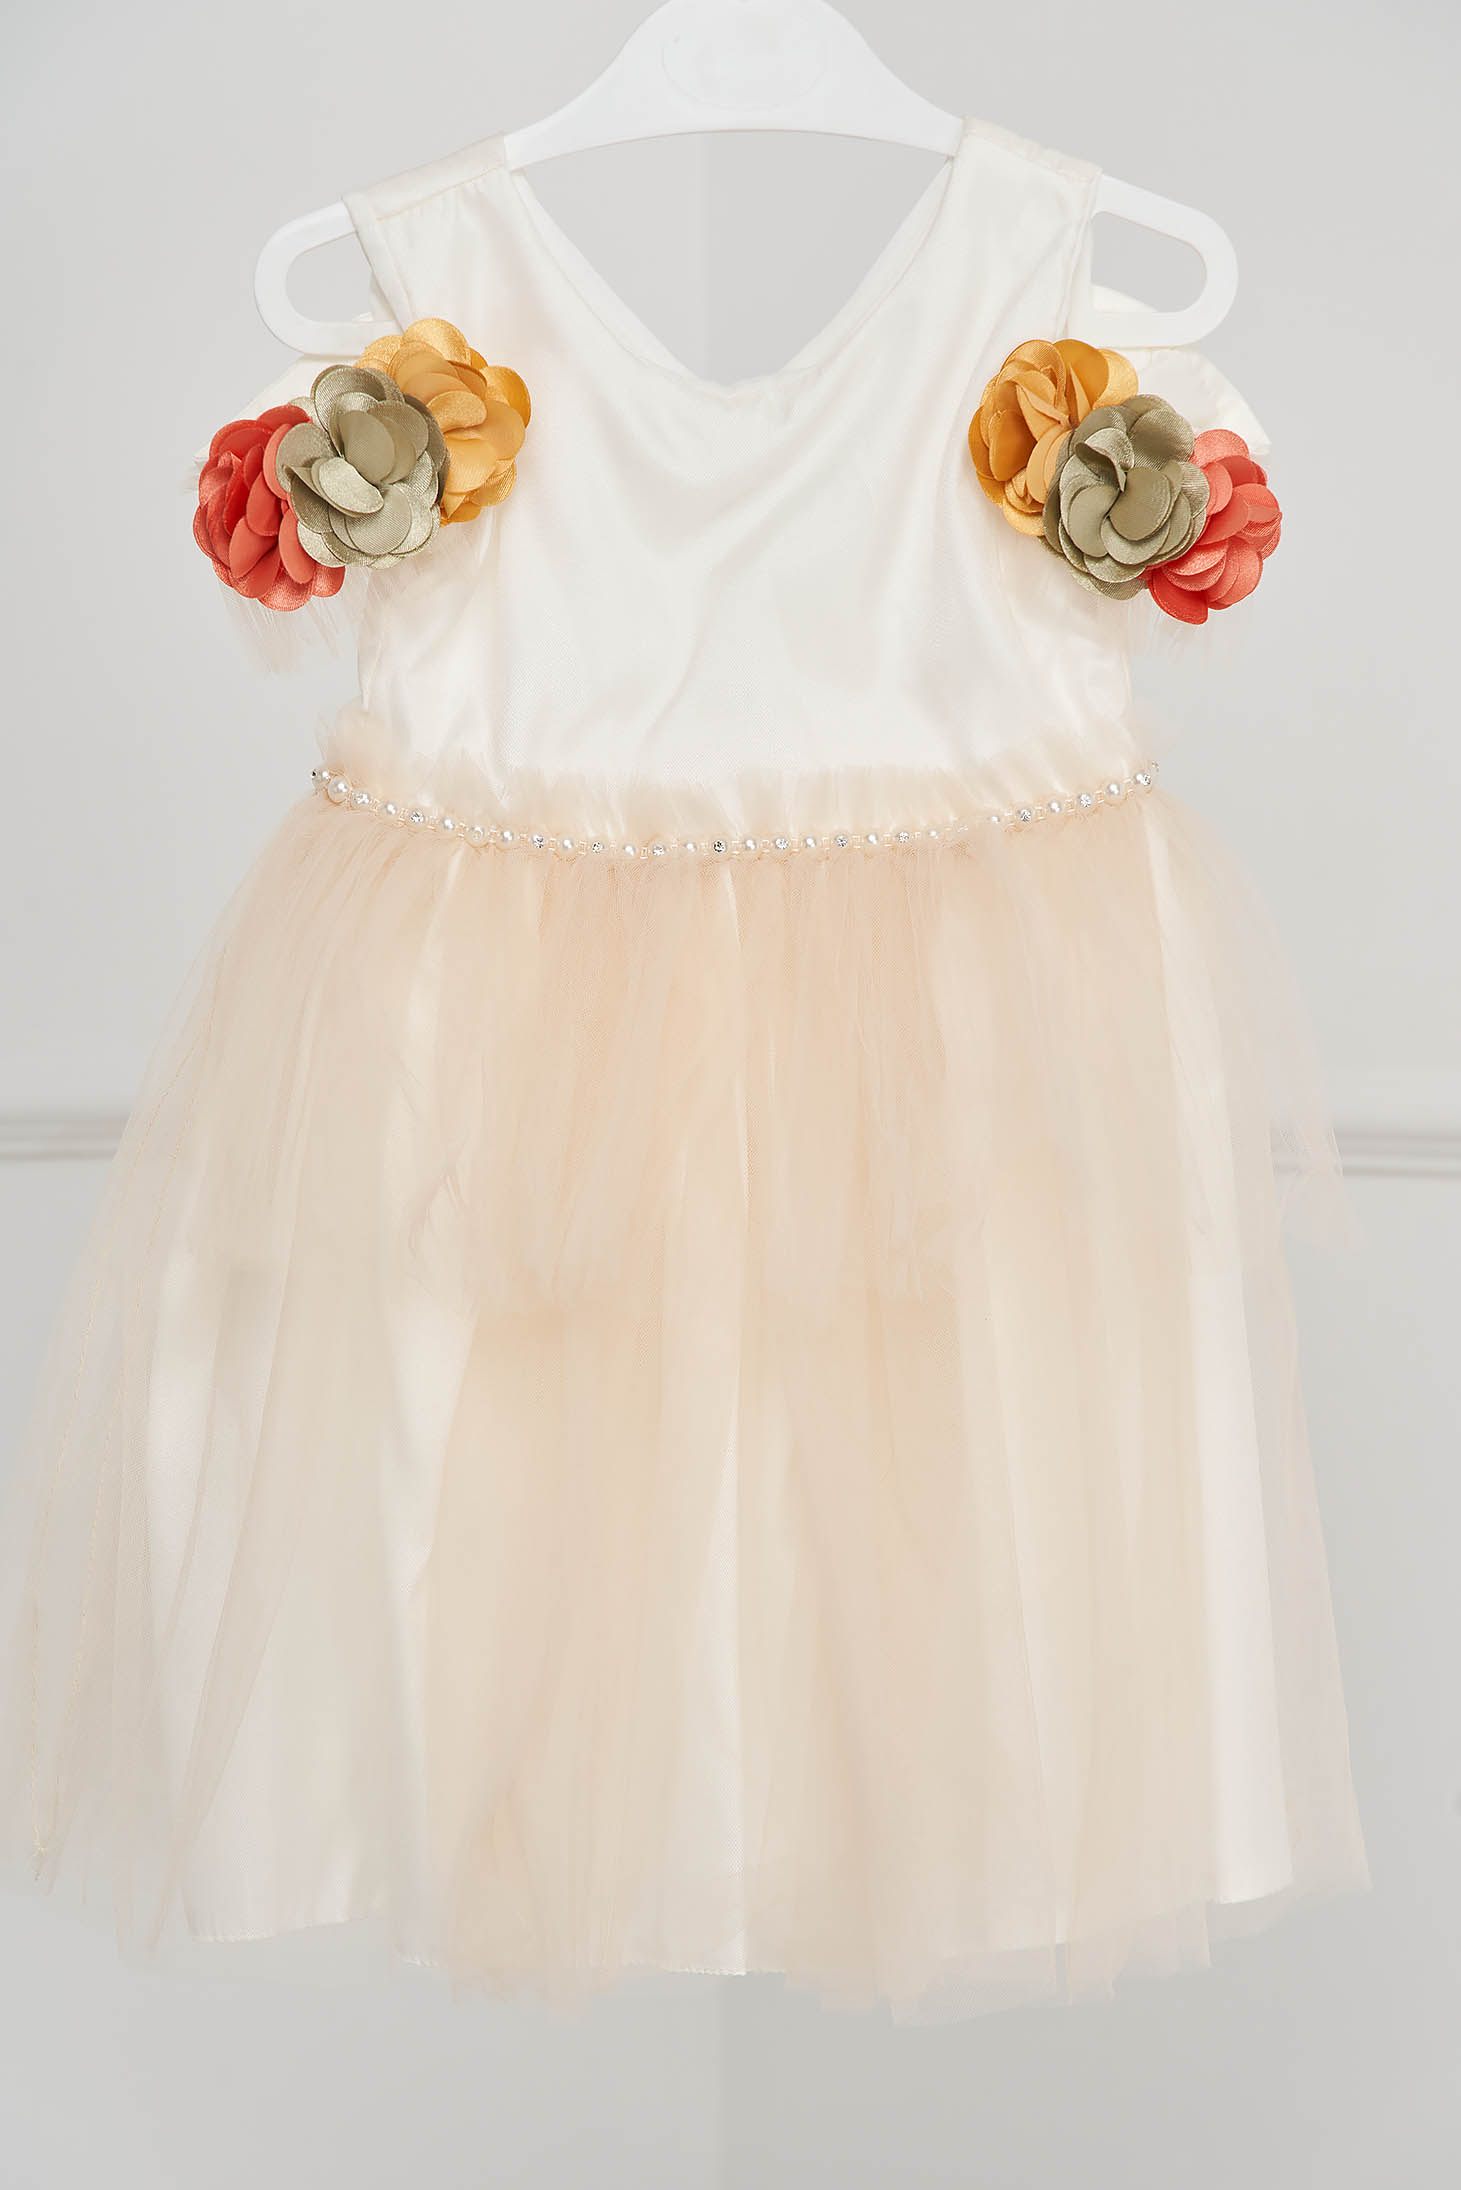 Ivory dress occasional from tulle with small beads embellished details with raised flowers